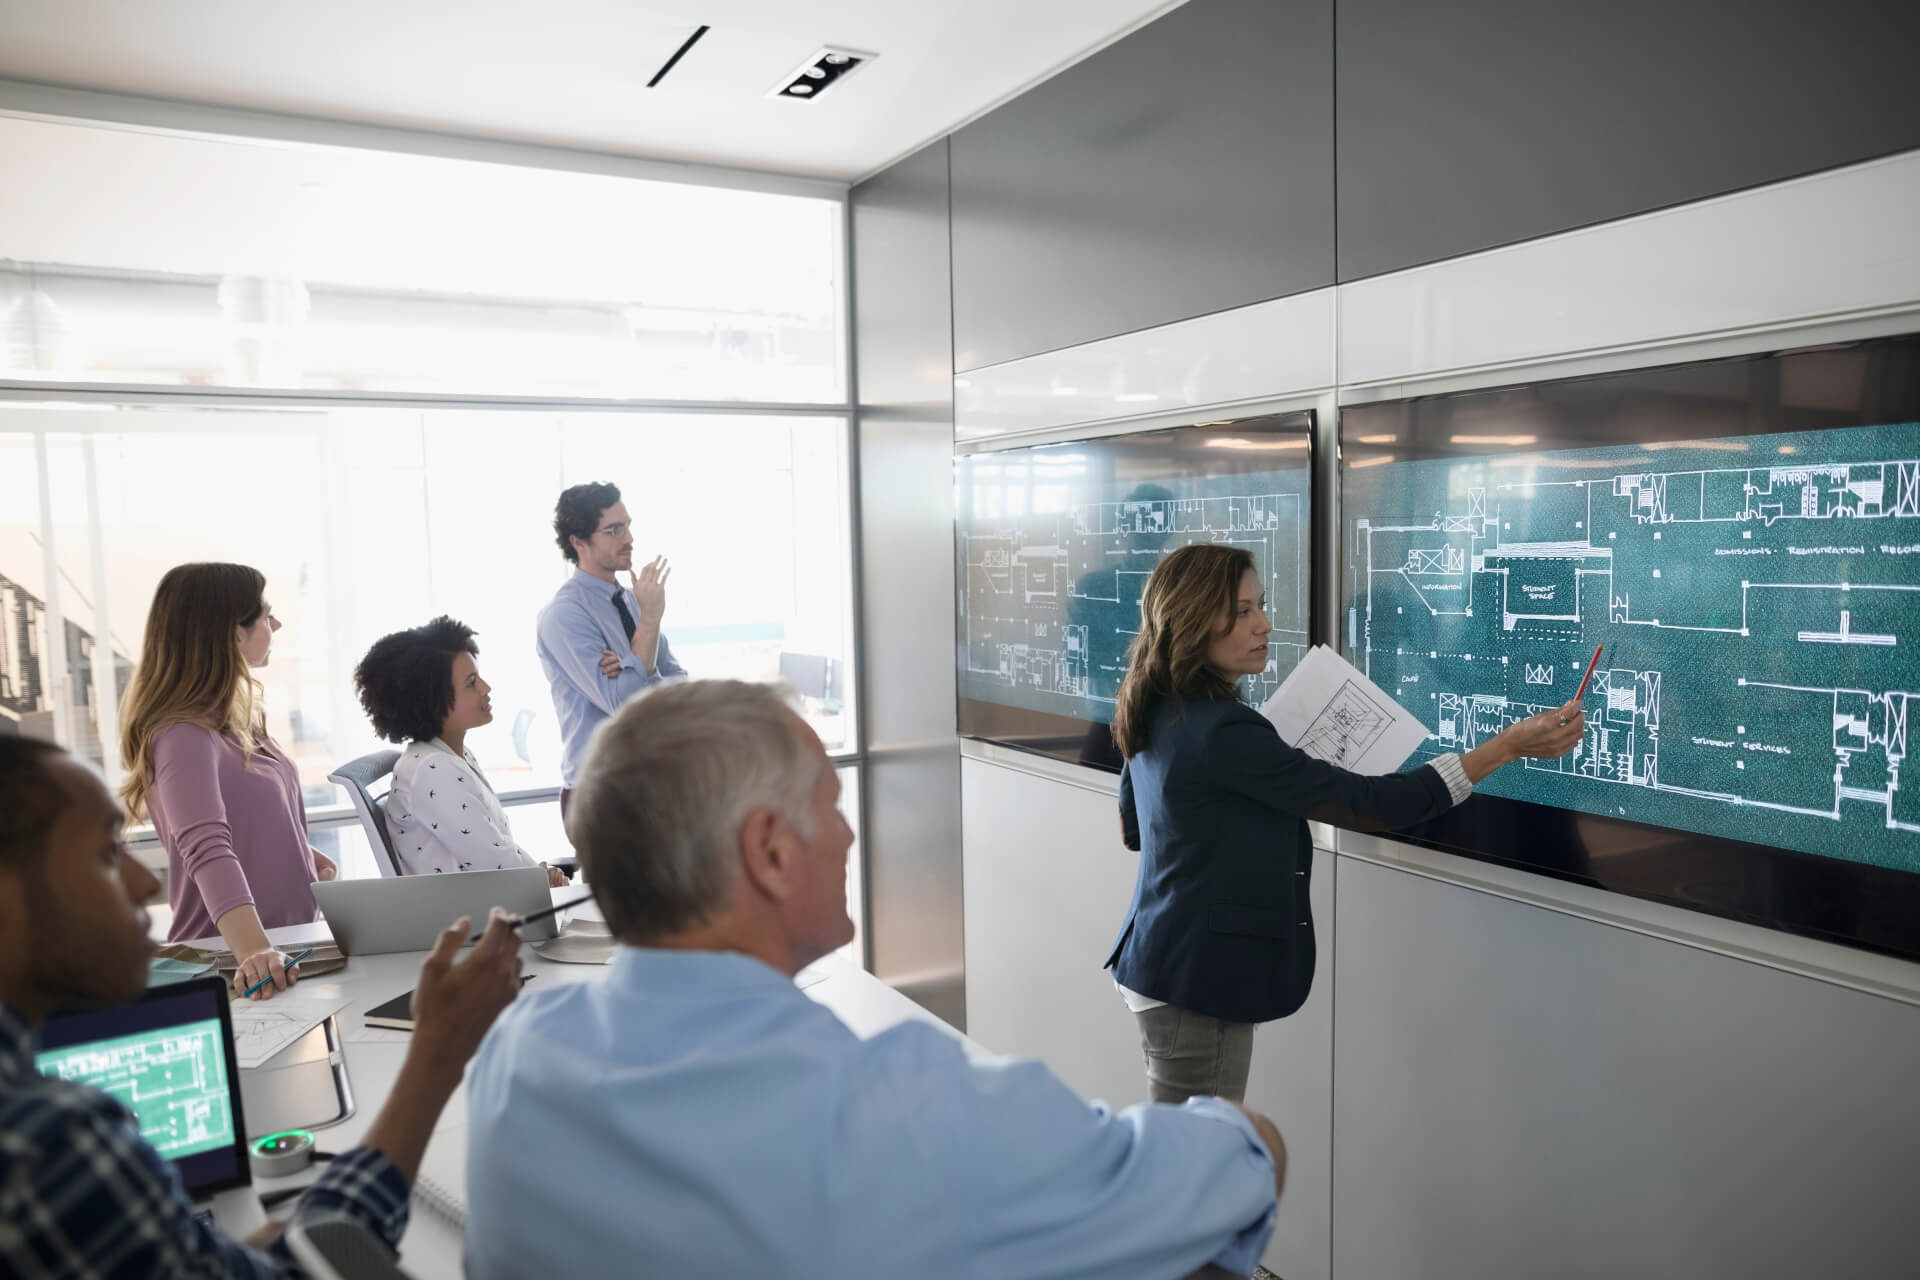 Female architect discussing digital blueprints at screen, leading conference room meeting